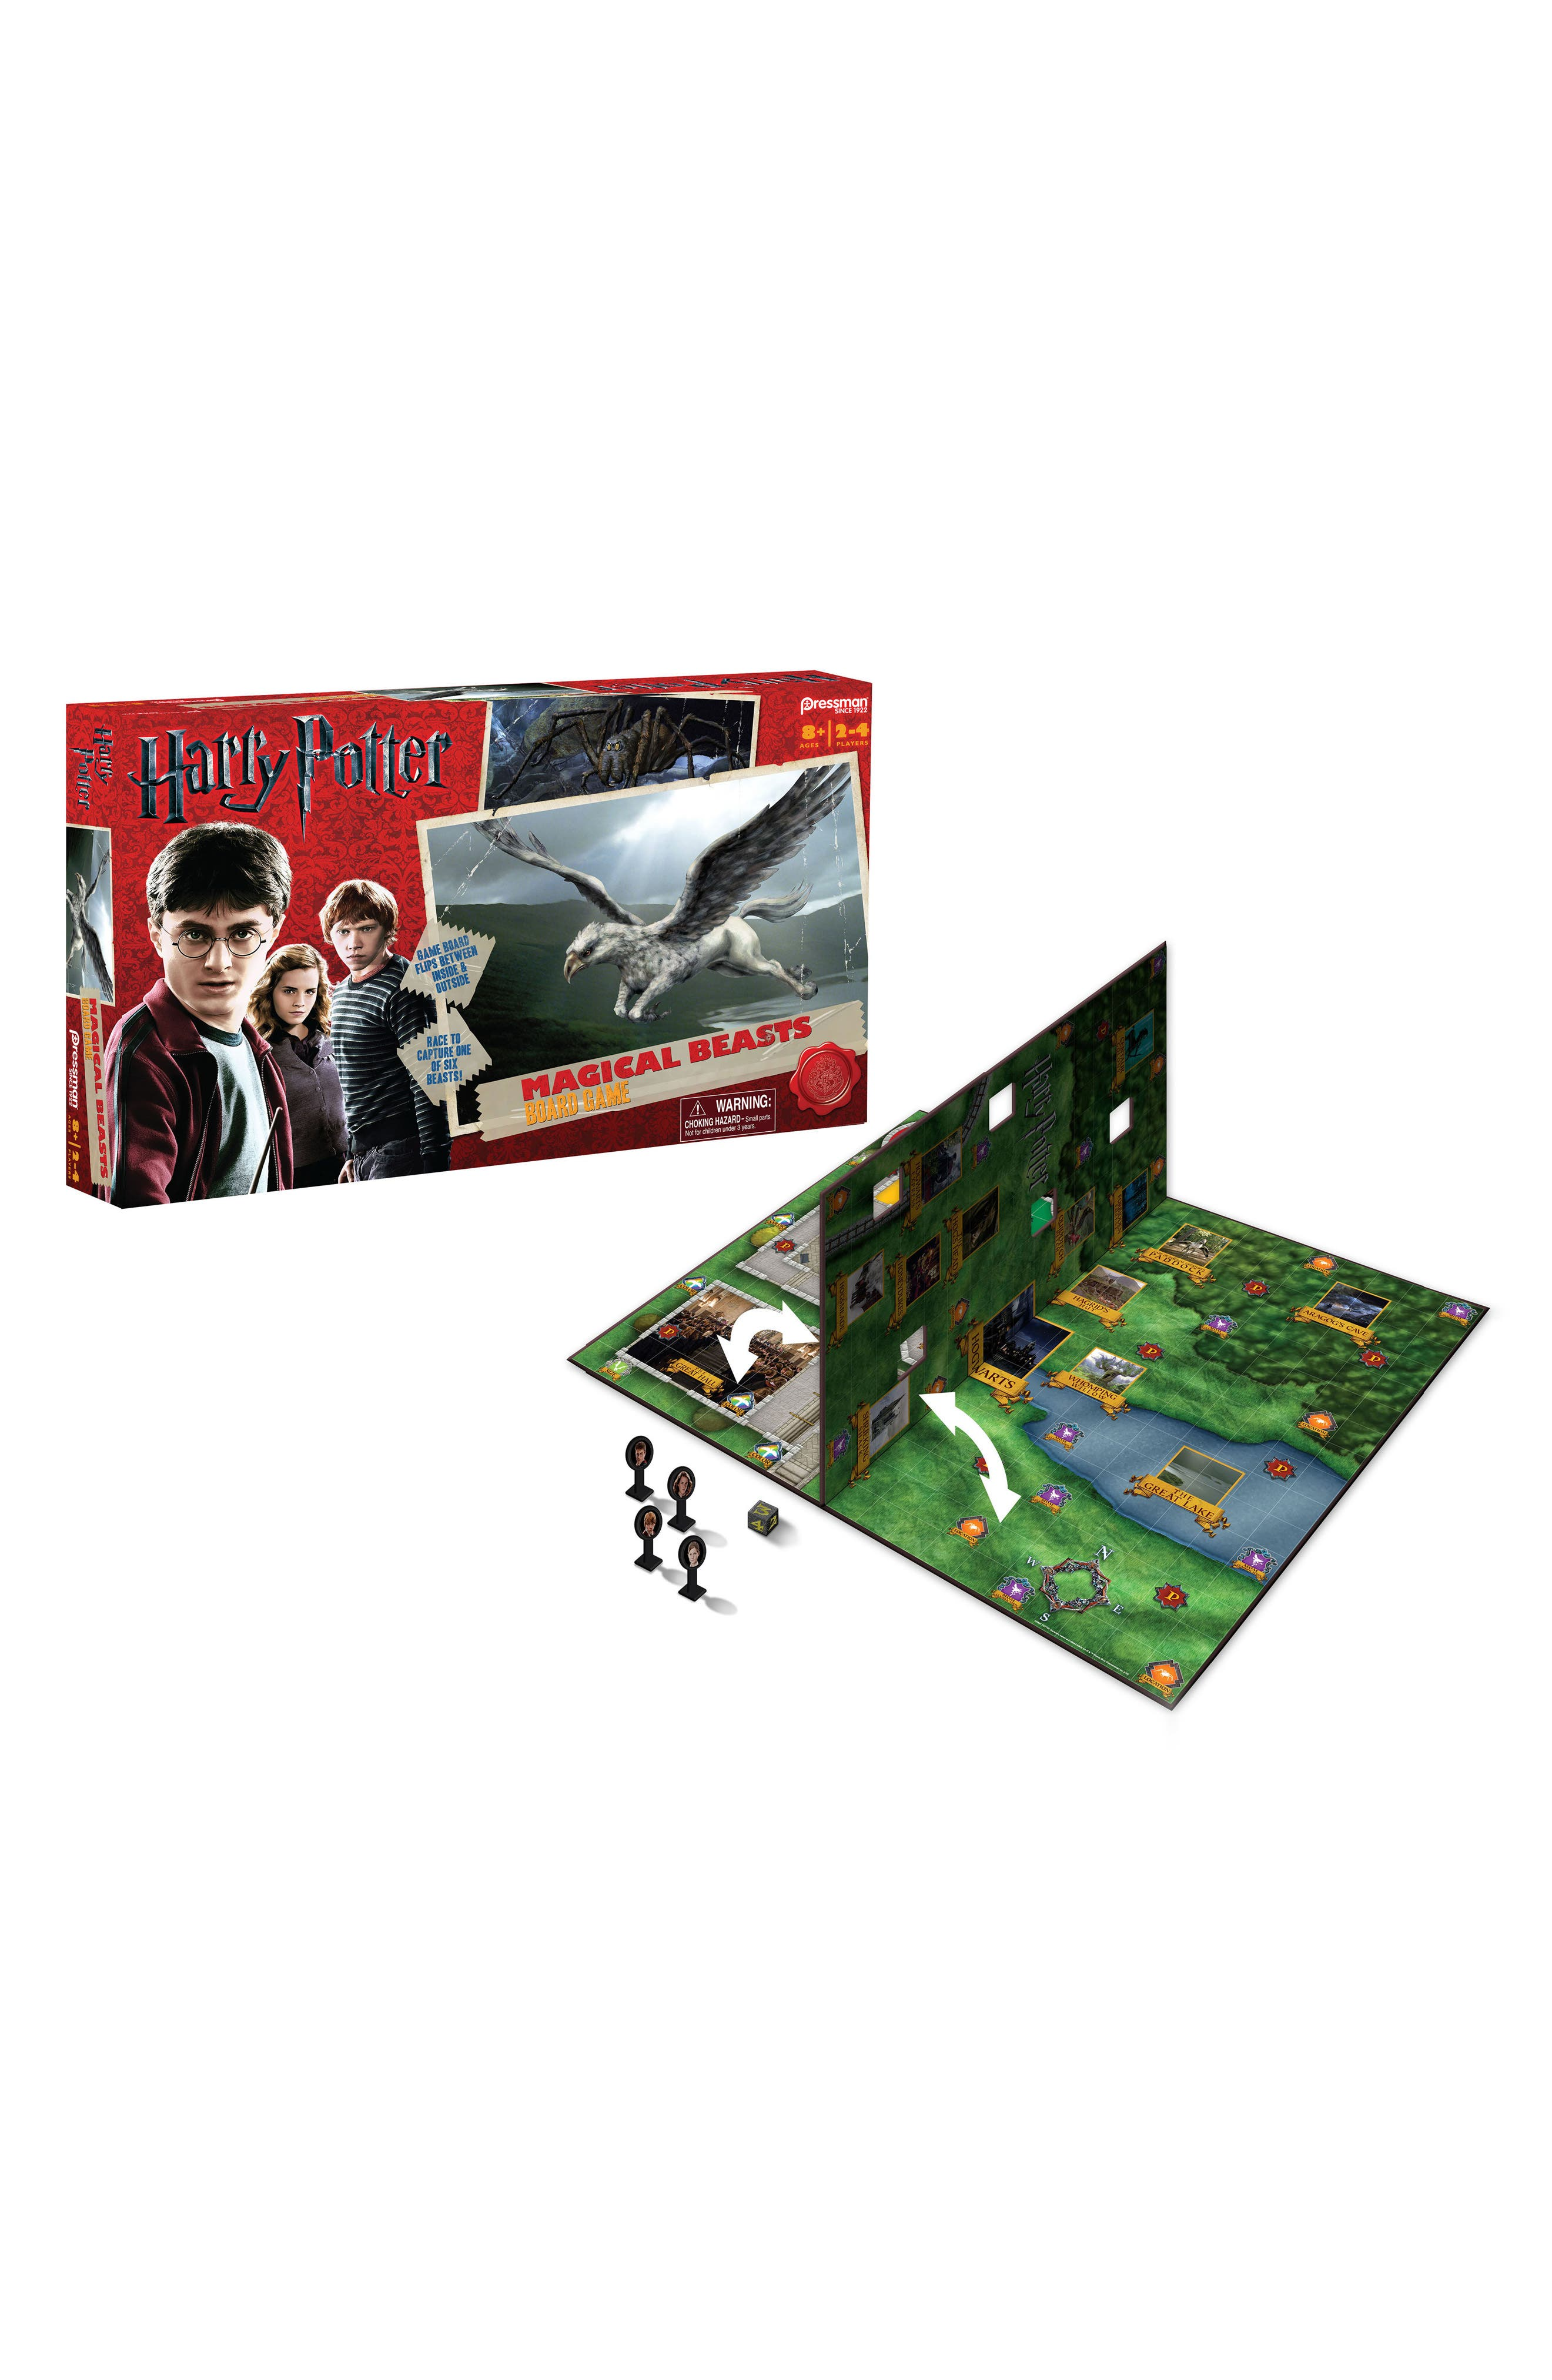 Alternate Image 1 Selected - Pressman Toy 6-Piece Harry Potter Magical Beasts Game